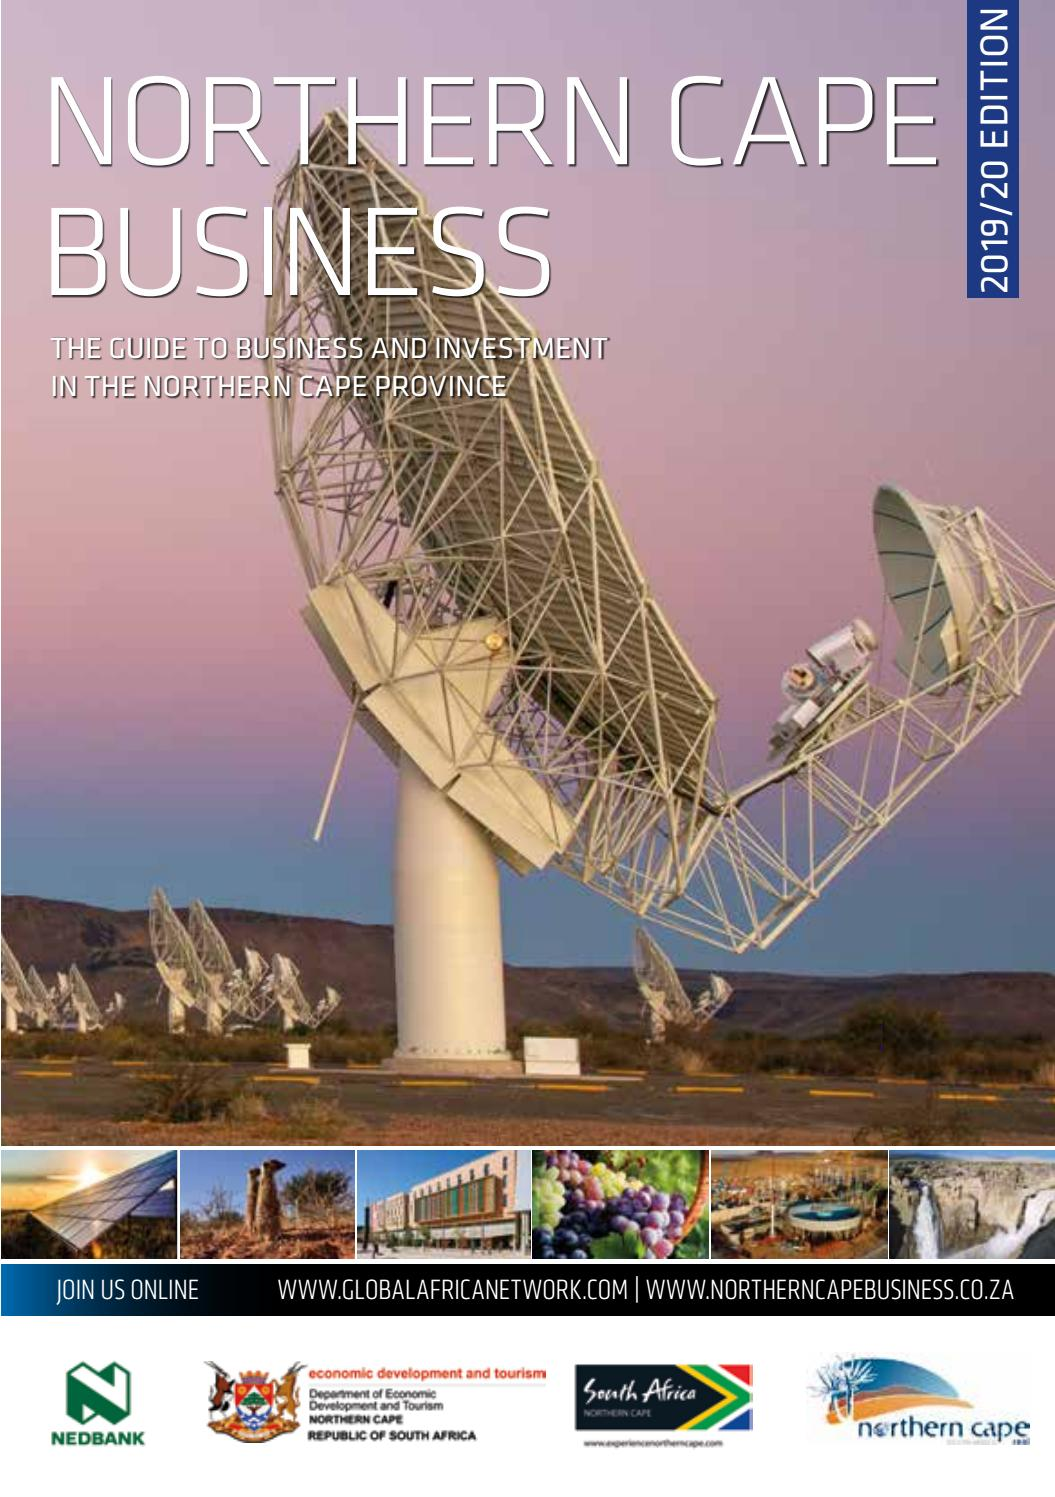 Northern Cape Business 2019/20 edition by Global Africa